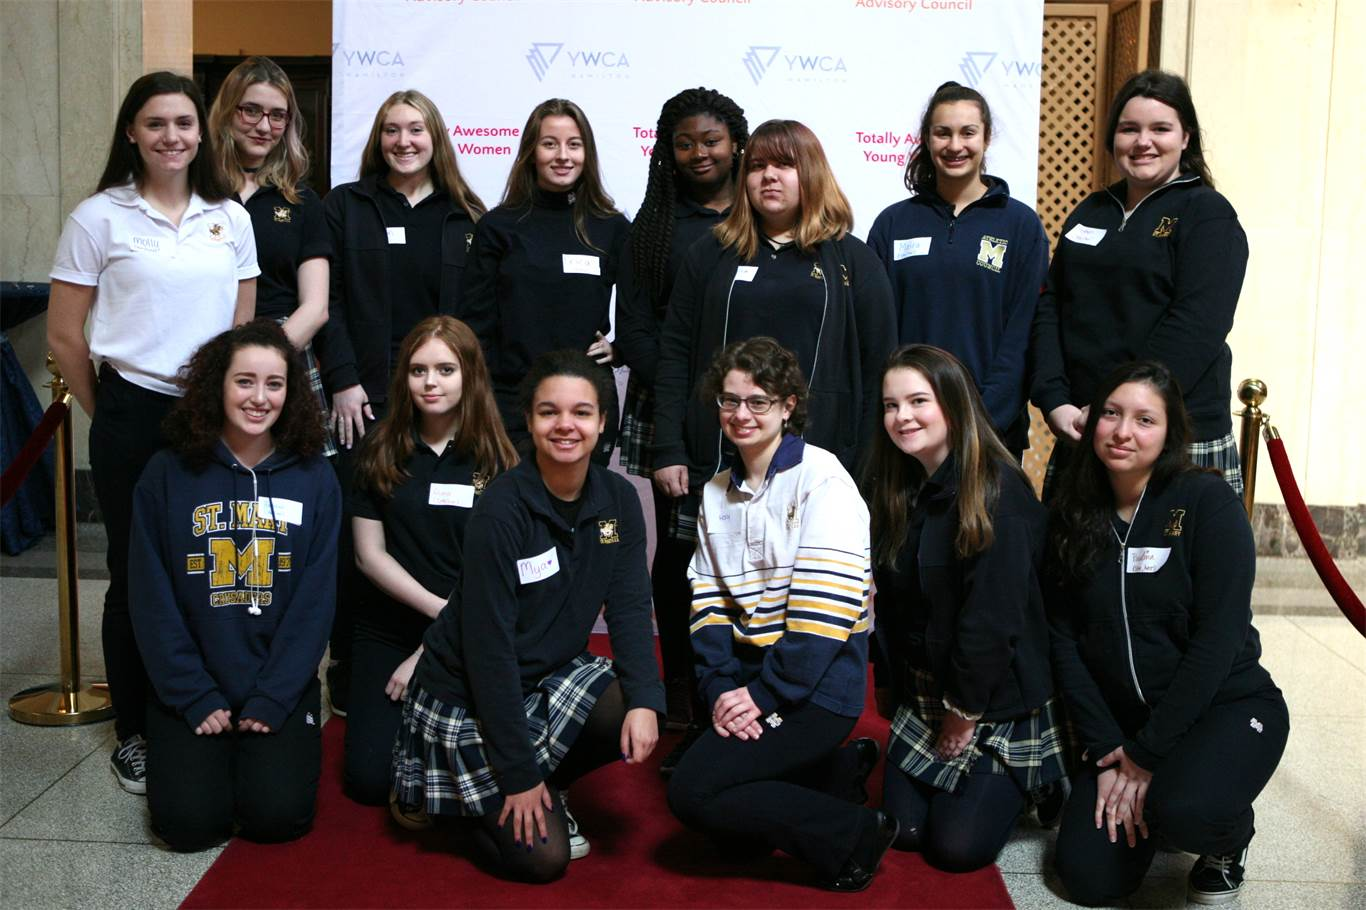 Students from St. Mary at the YWCA's Totally Awesome Young Women Breakfast. Photo by Nancy Castura.